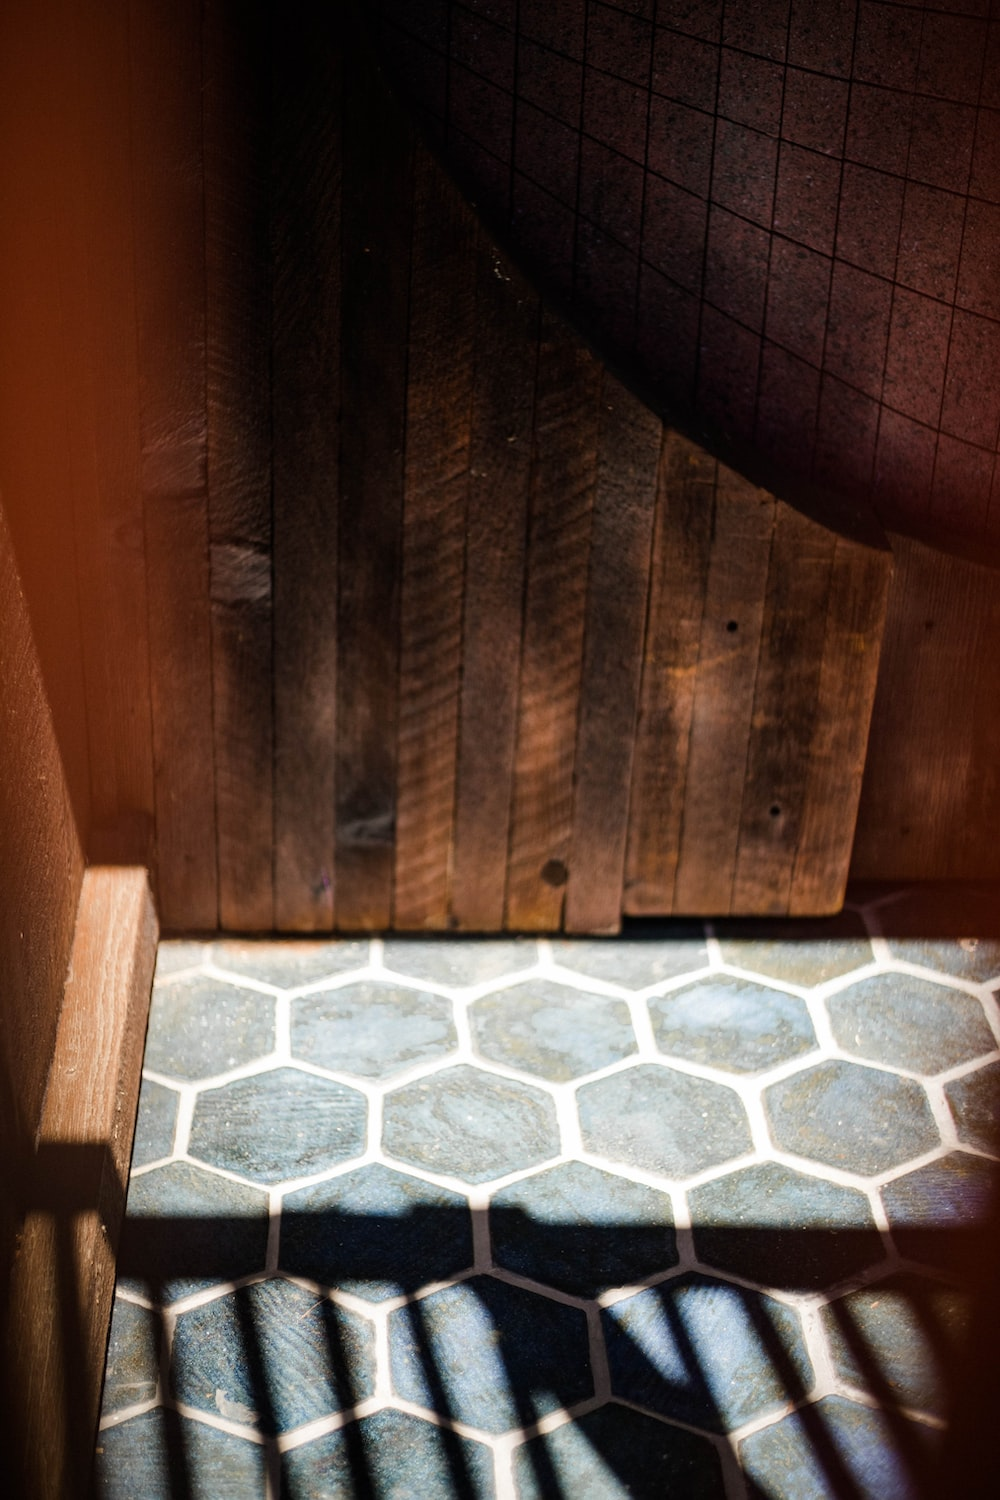 brown wooden wall with white and gray floor tiles